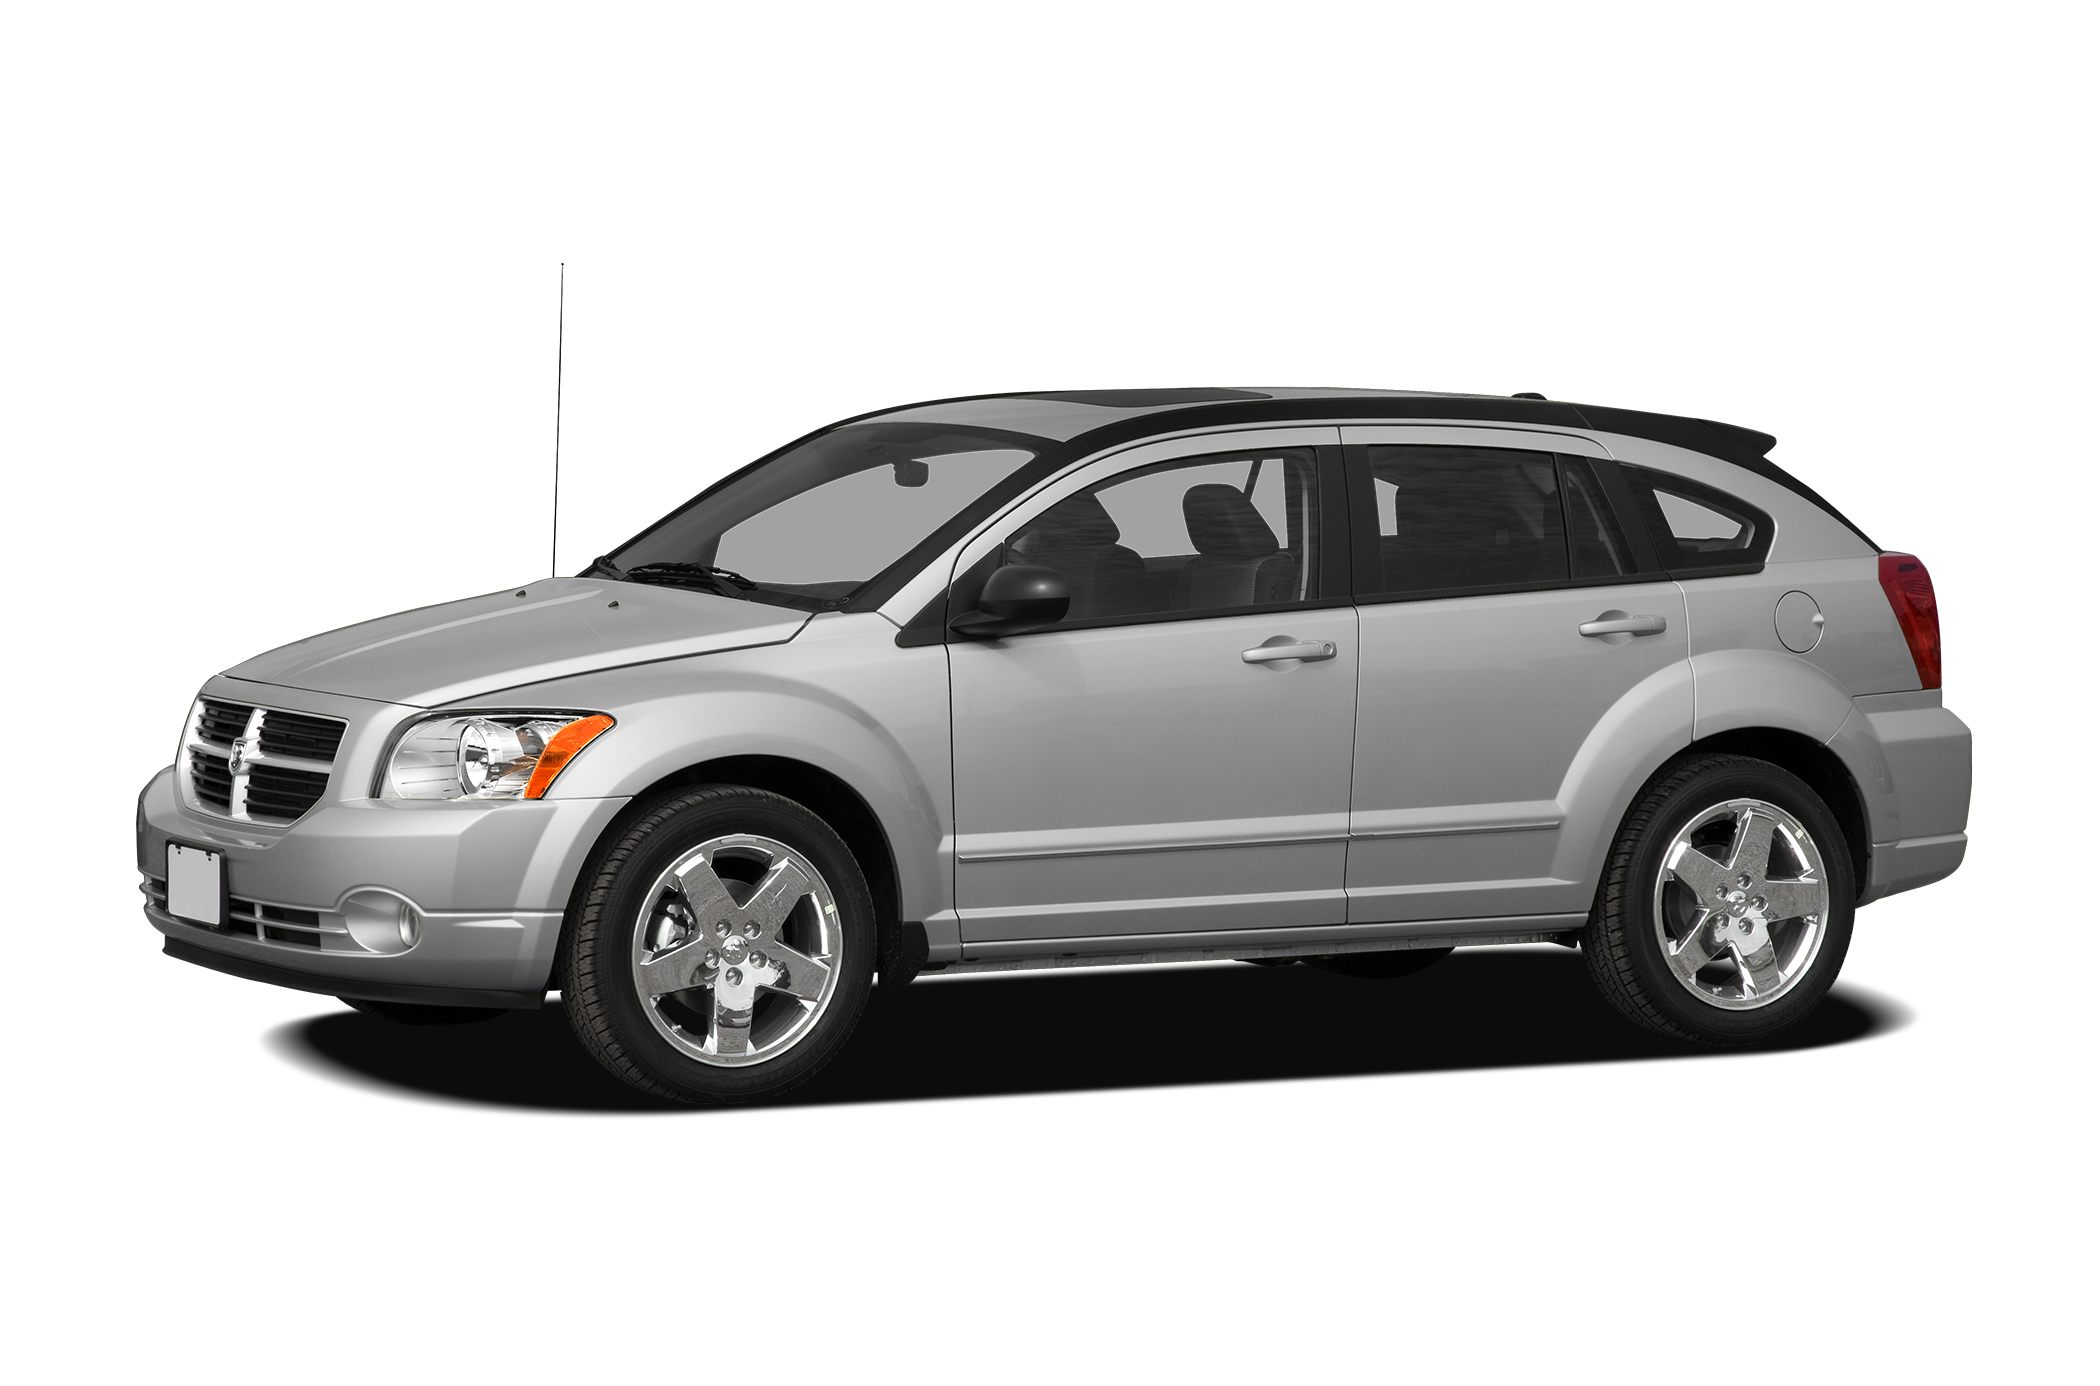 2009 Dodge Caliber SXT Hatchback for sale in Lebanon for $7,795 with 92,112 miles.